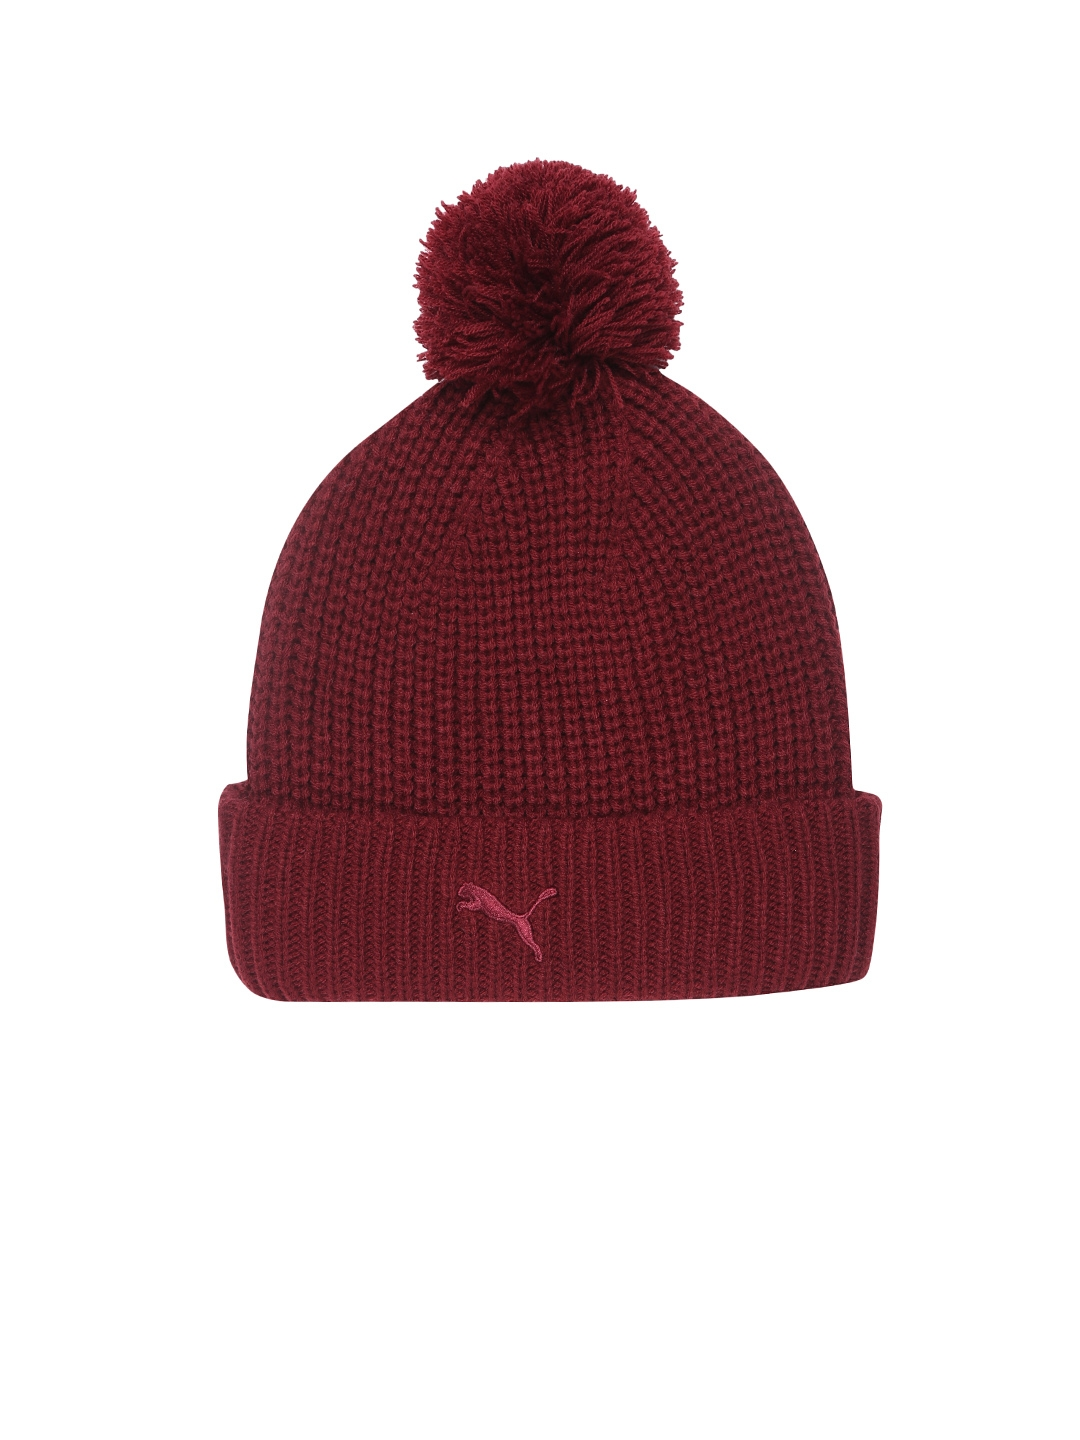 Buy Puma Women Maroon Solid SF LS Pom Pom Beanie - Caps for Women ... a9825cbbcc9